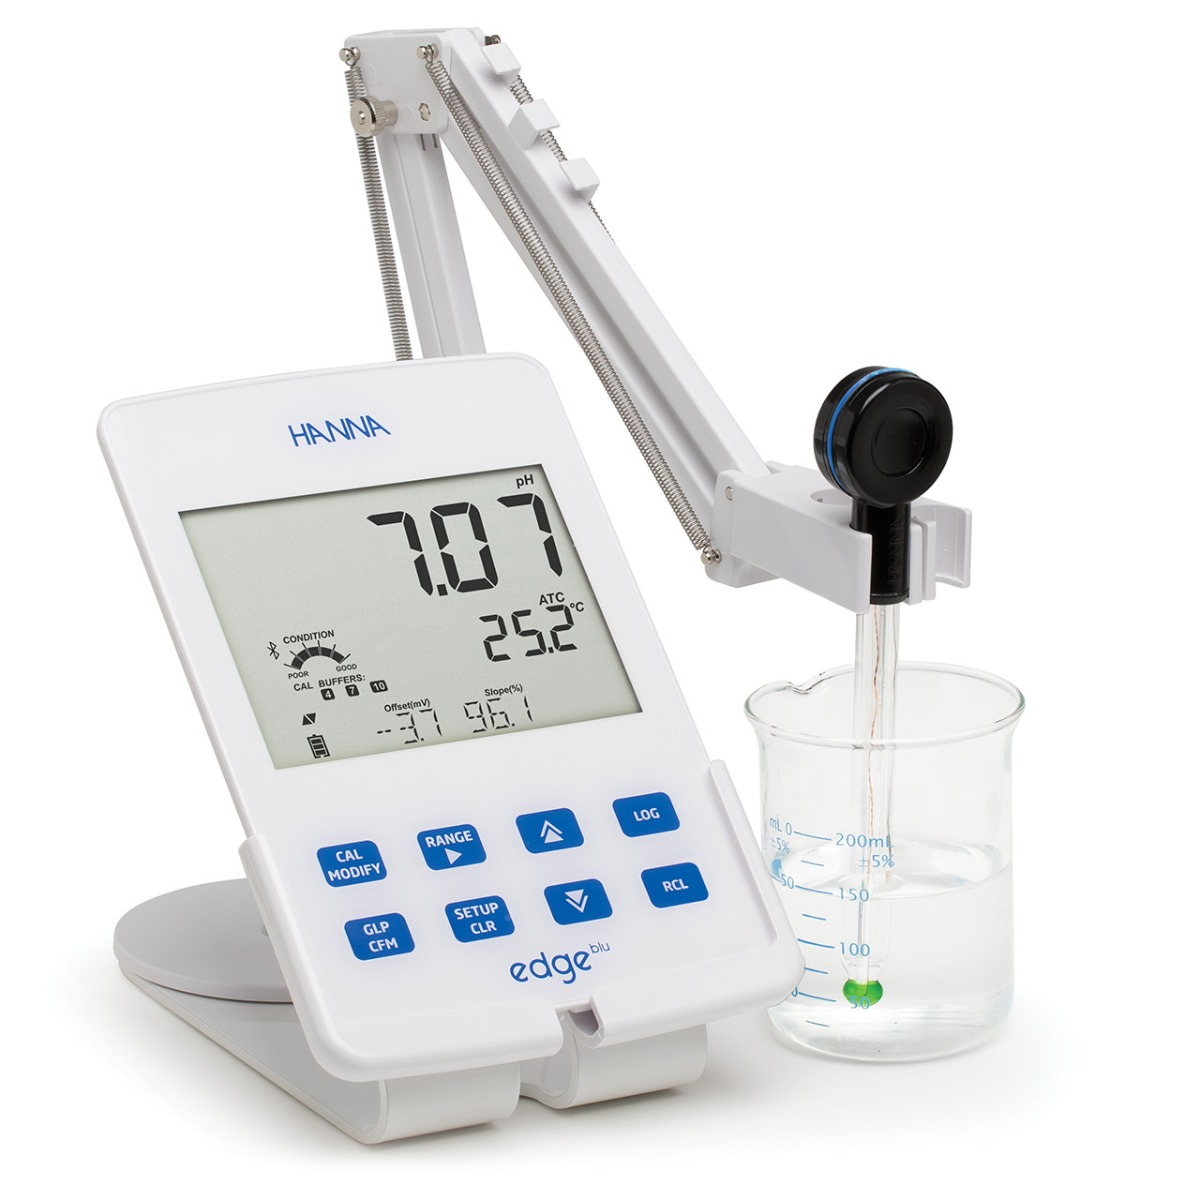 edge® blu Bluetooth® Smart pH Electrode and Meter - HI2202